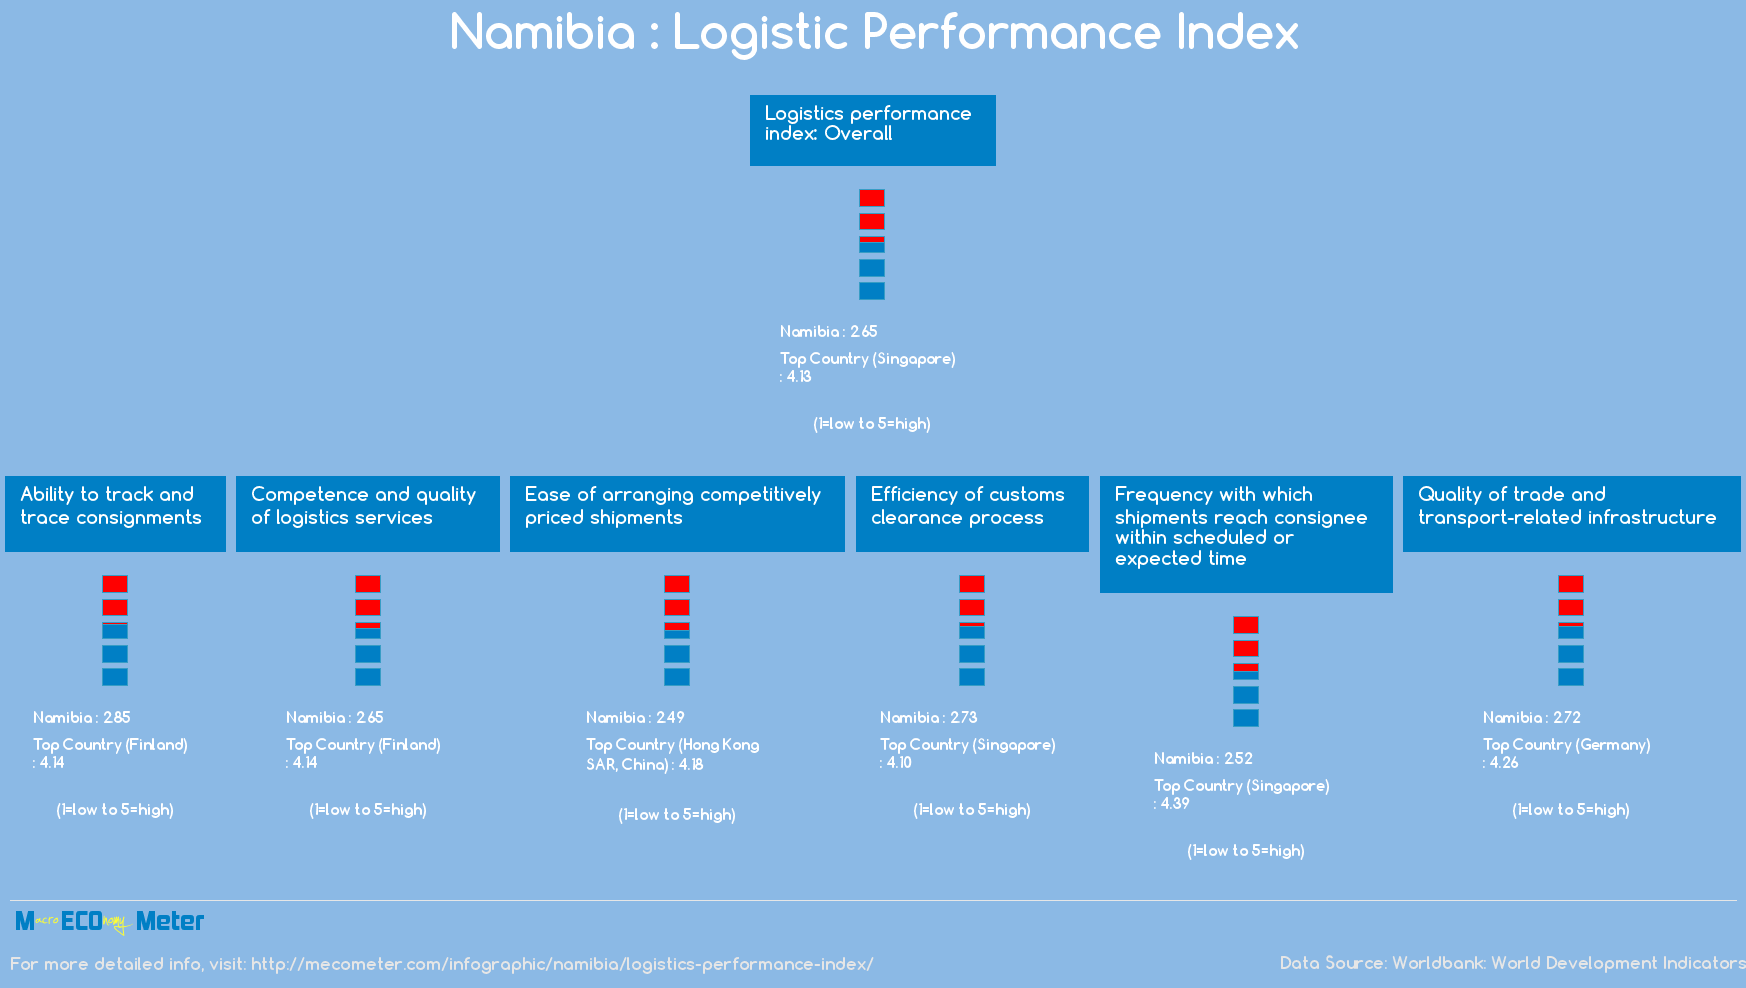 Namibia : Logistic Performance Index